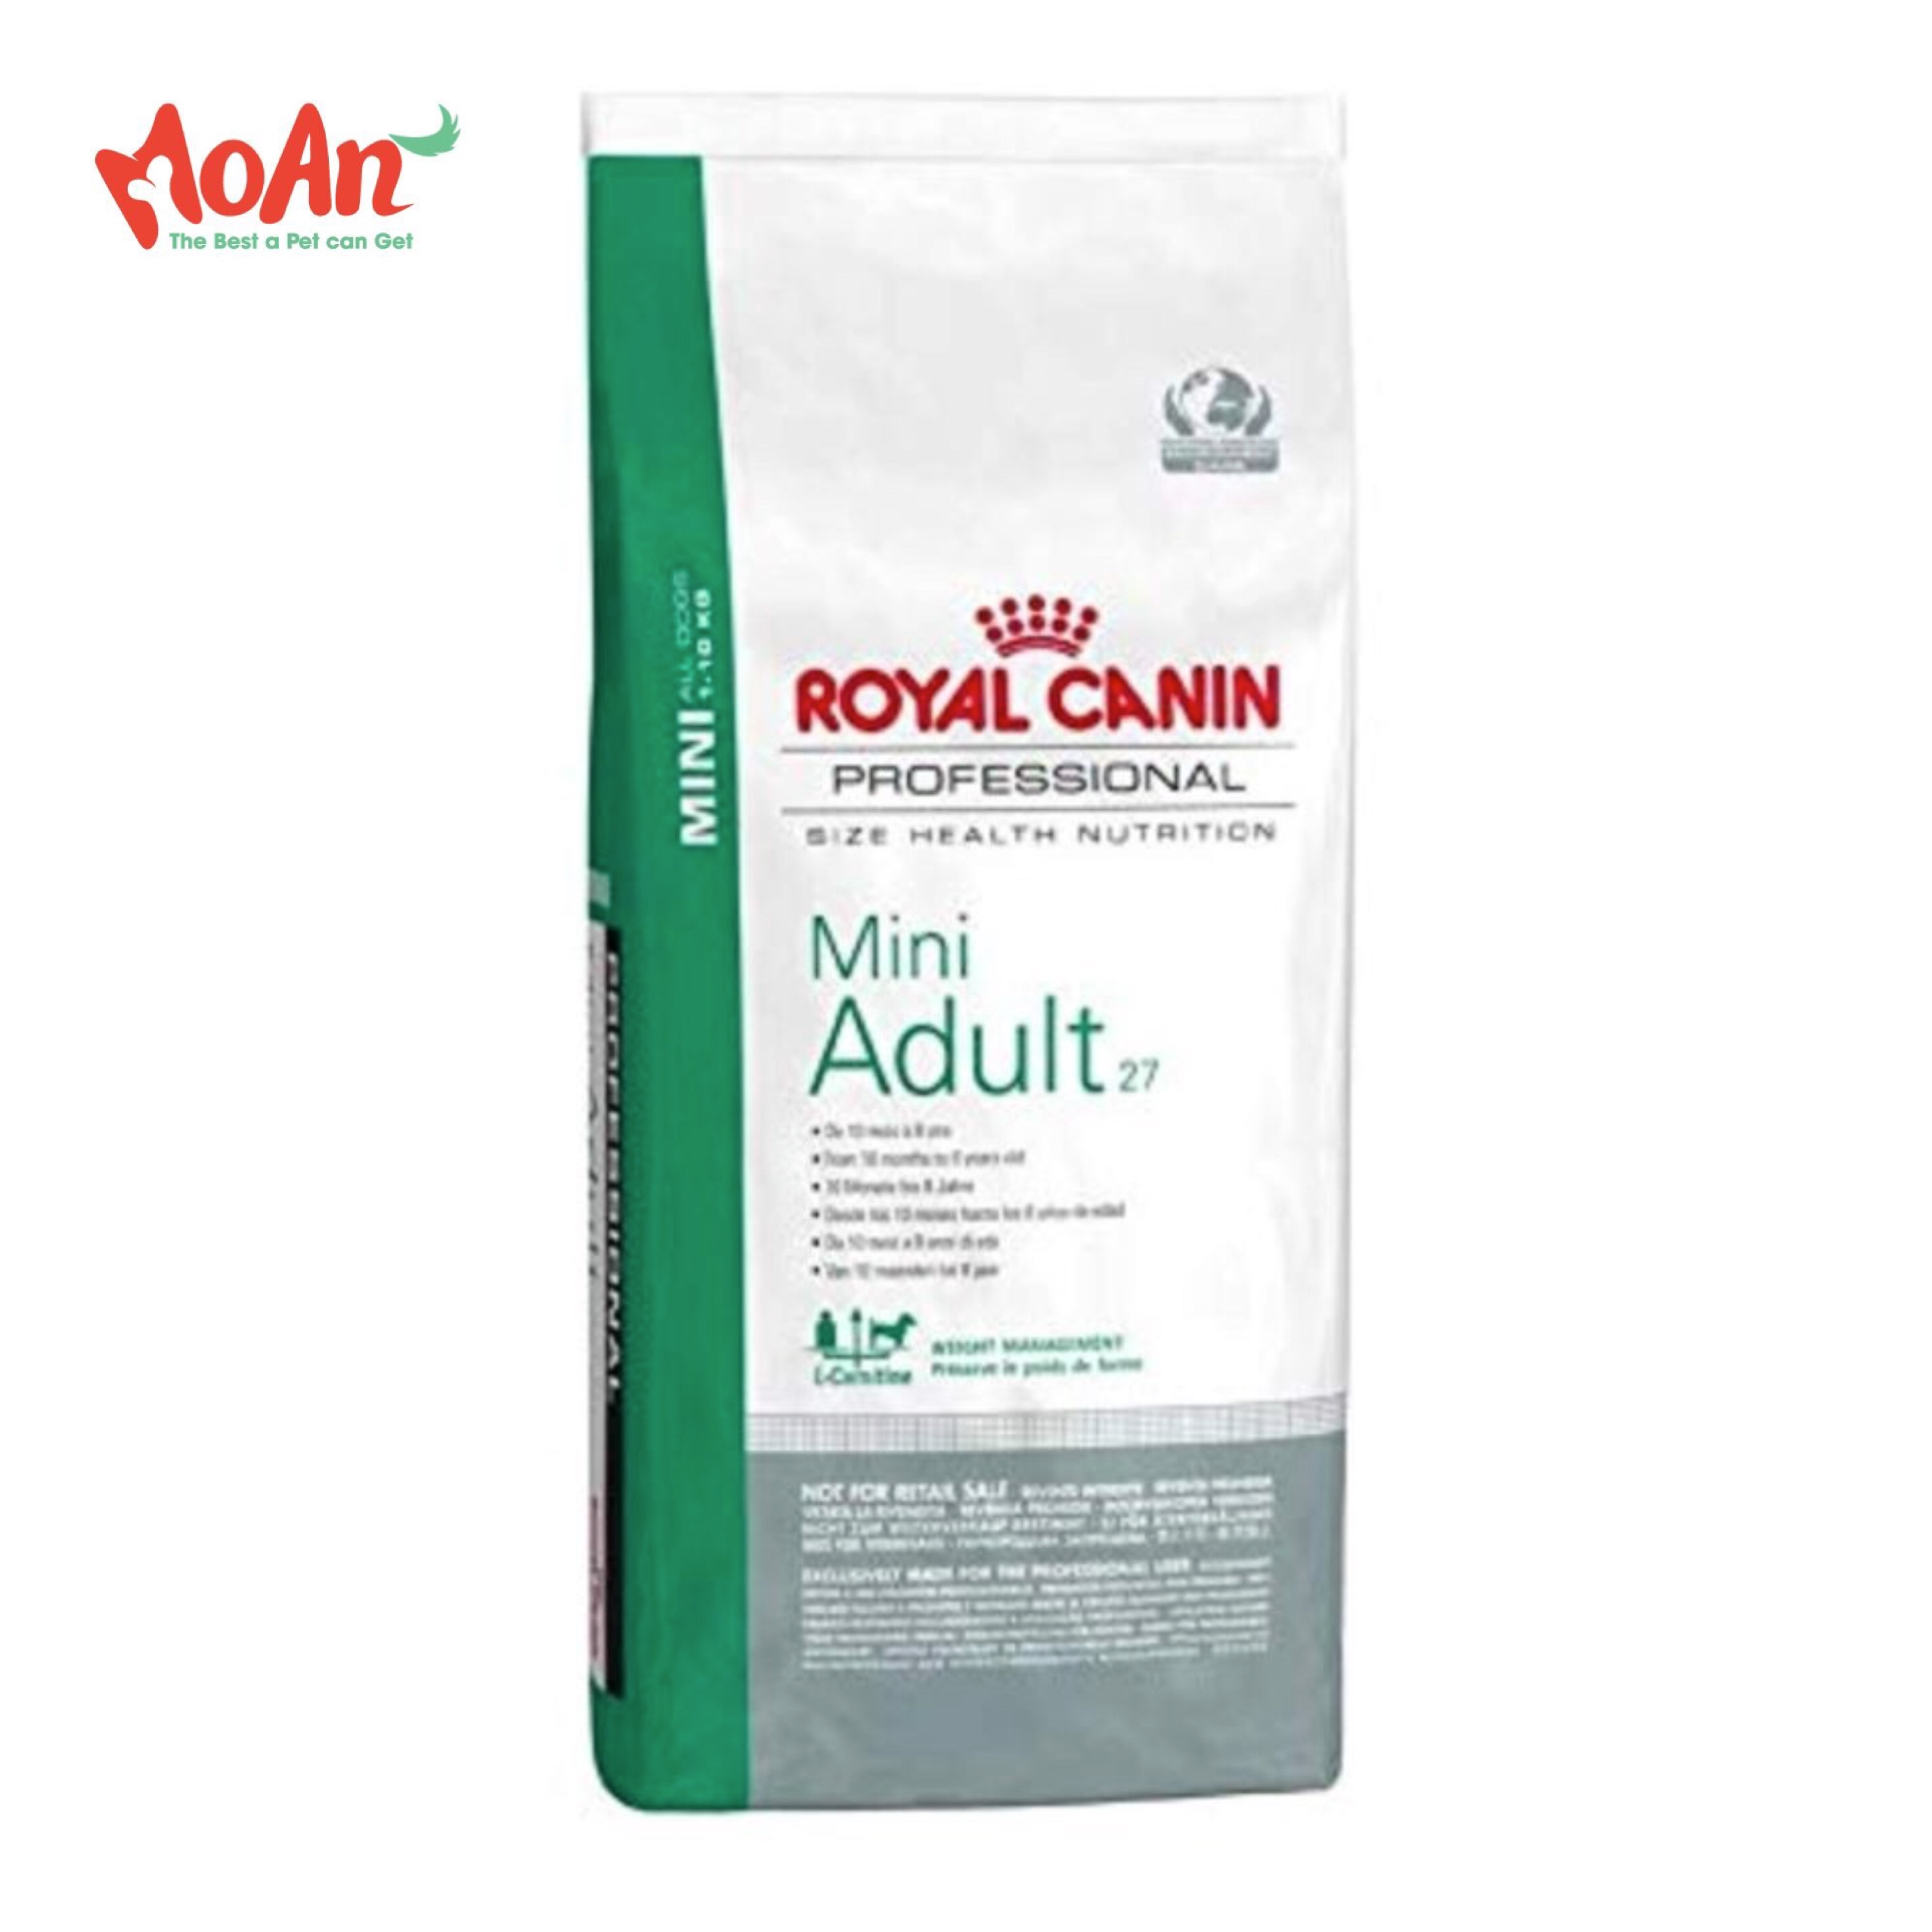 ROYAL CANIN MINI ADULT 15kg